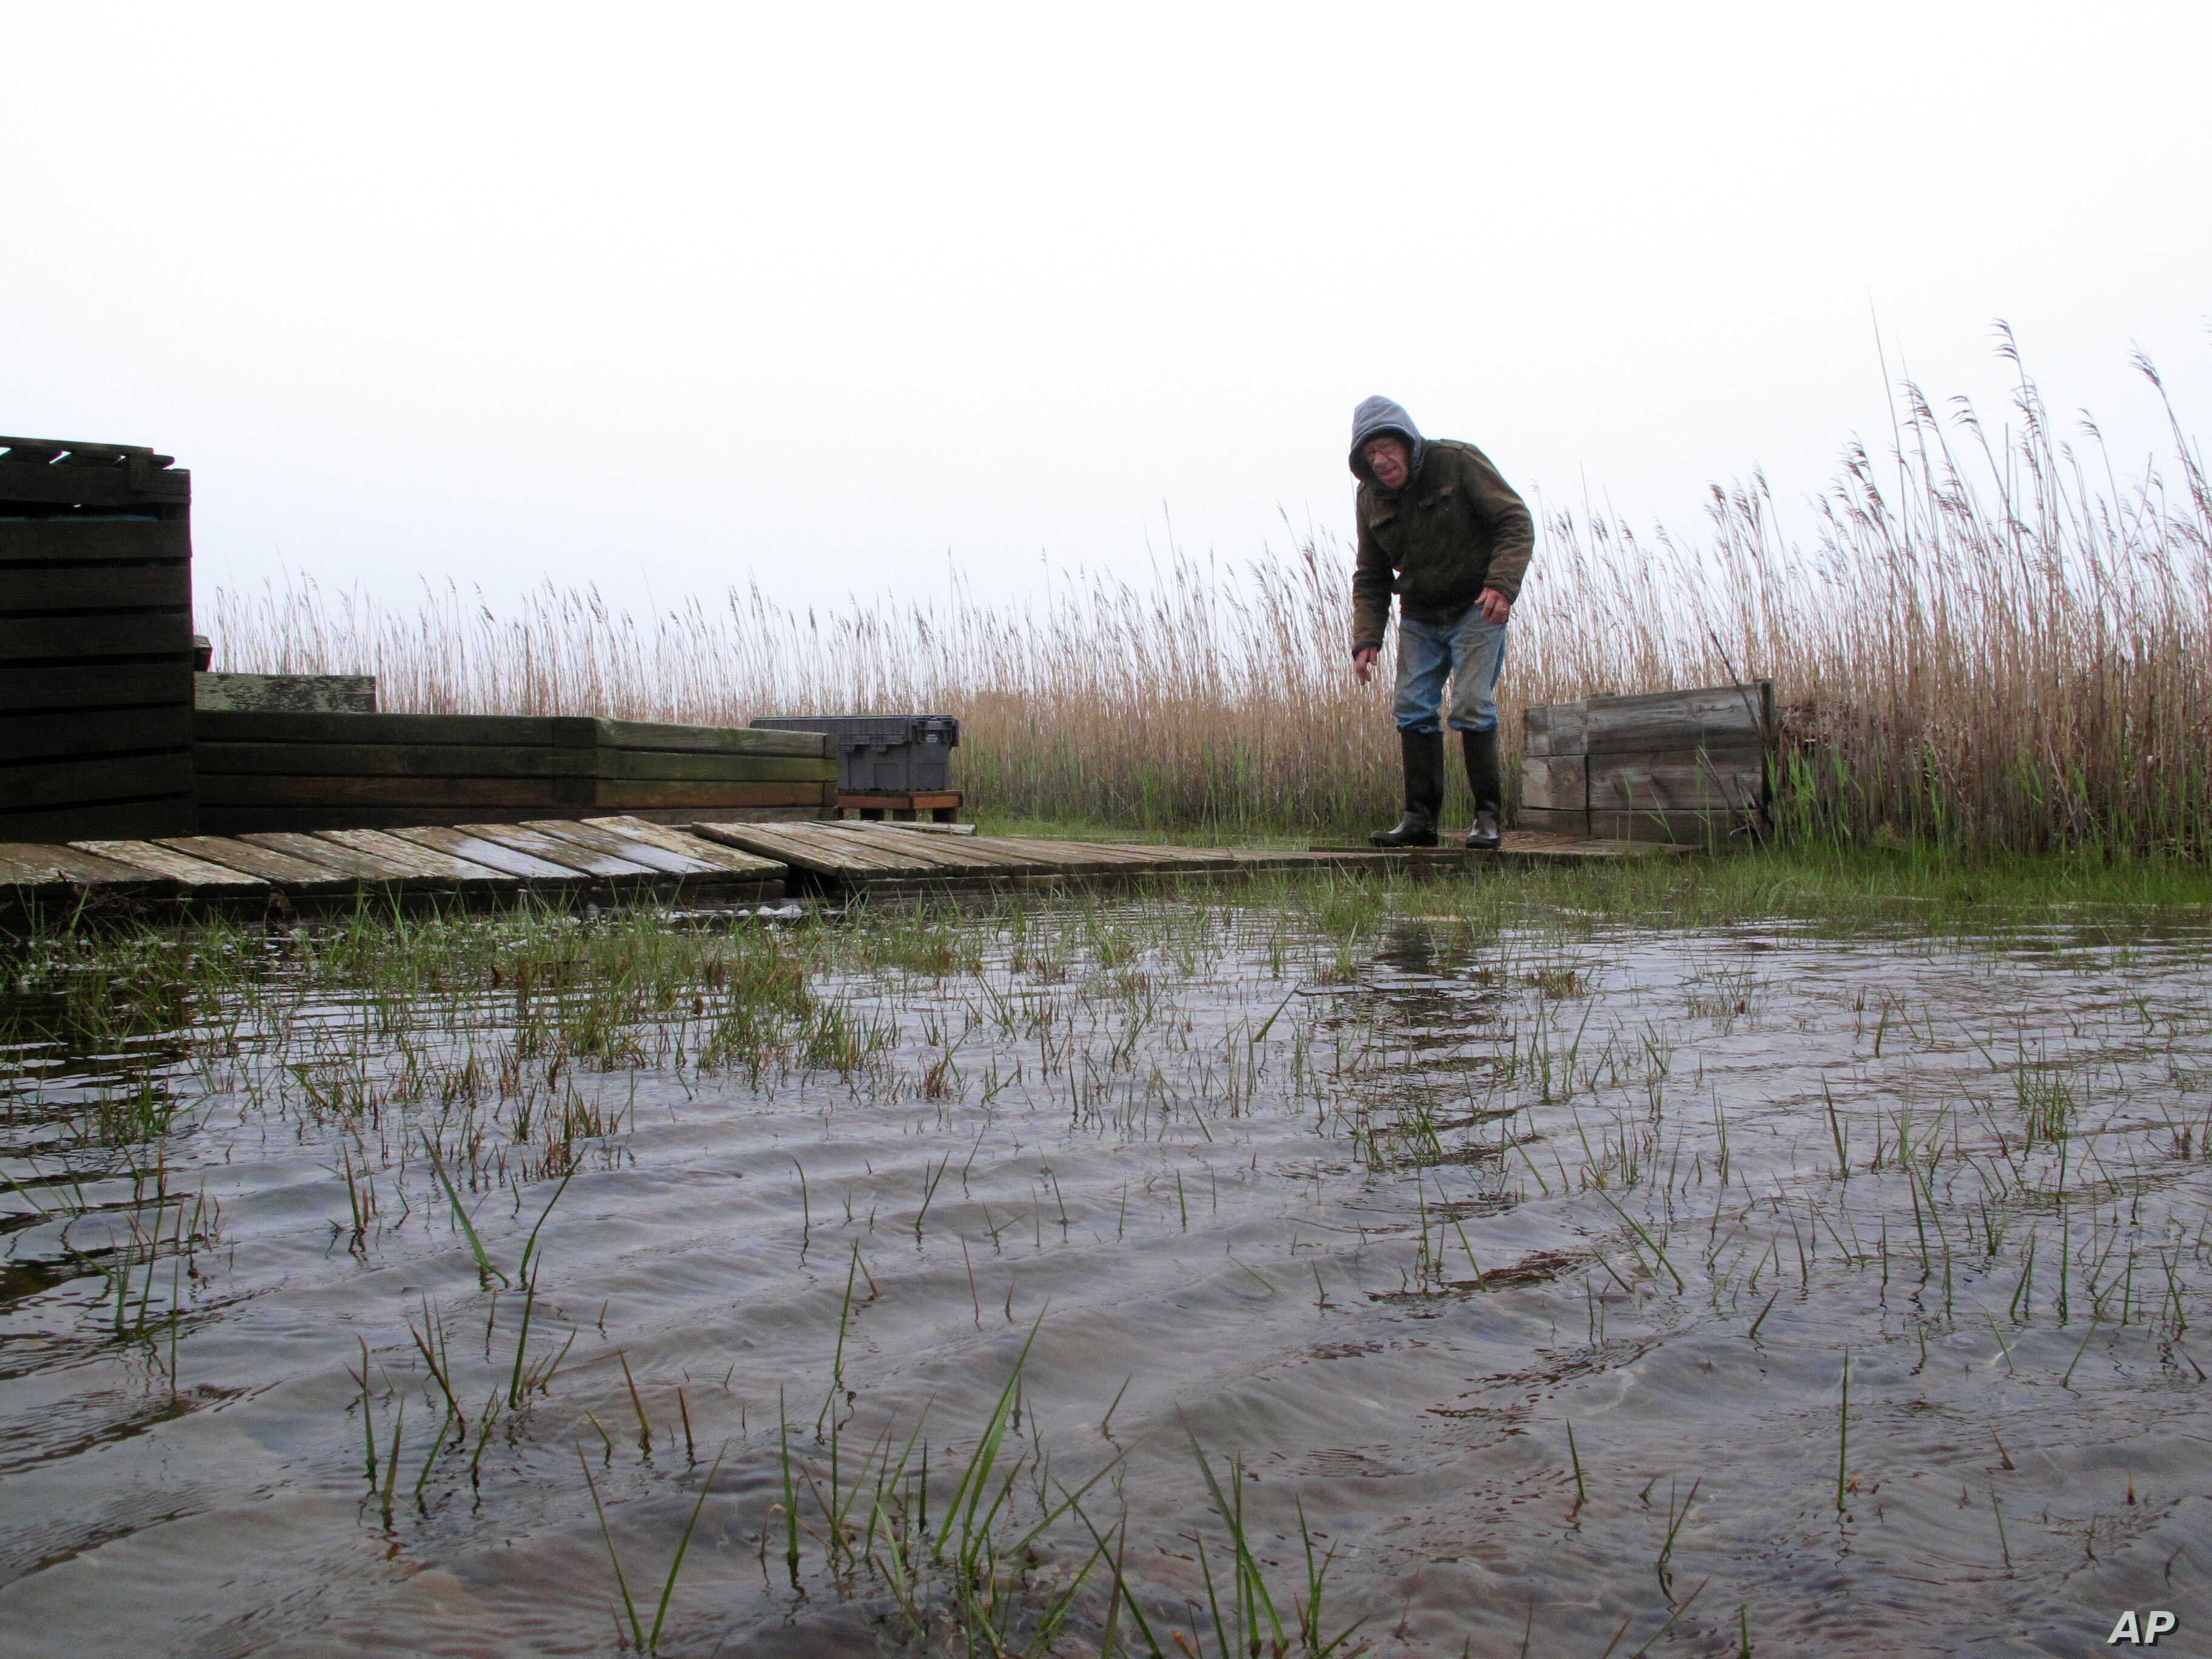 FILE - Jim O'Neill walks across a makeshift boardwalk he built in his back yard in Manahawkin N.J., because the property is almost always under water, even on sunny days, April 26, 2017.